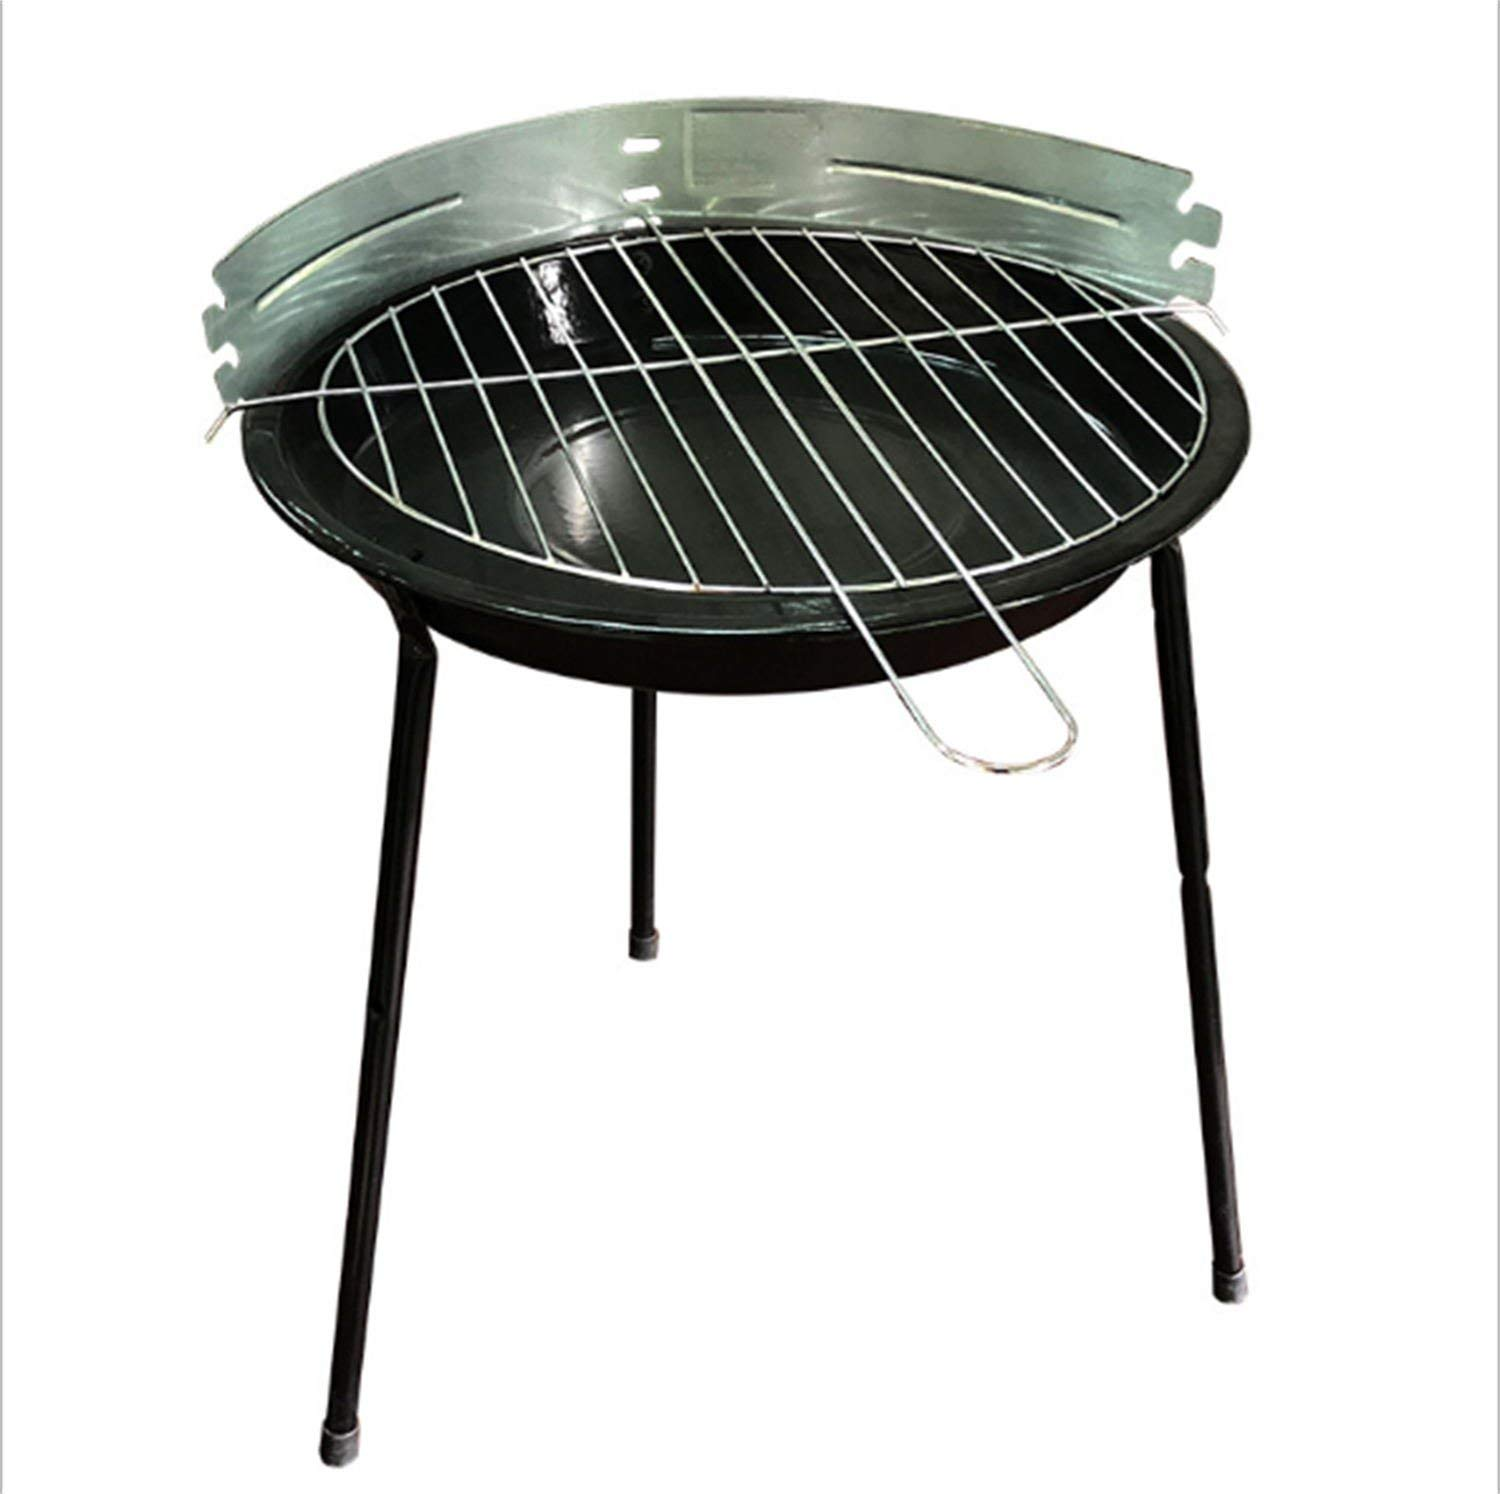 QueenA Portable Charcoal Barbecue Mini Grill, 13 Inch Small Lightweight BBQ Grill Smokeless Charcoal Grill for Outdoor Cooking Camping Picnic Hiking Tailgating Backpacking(Mini)